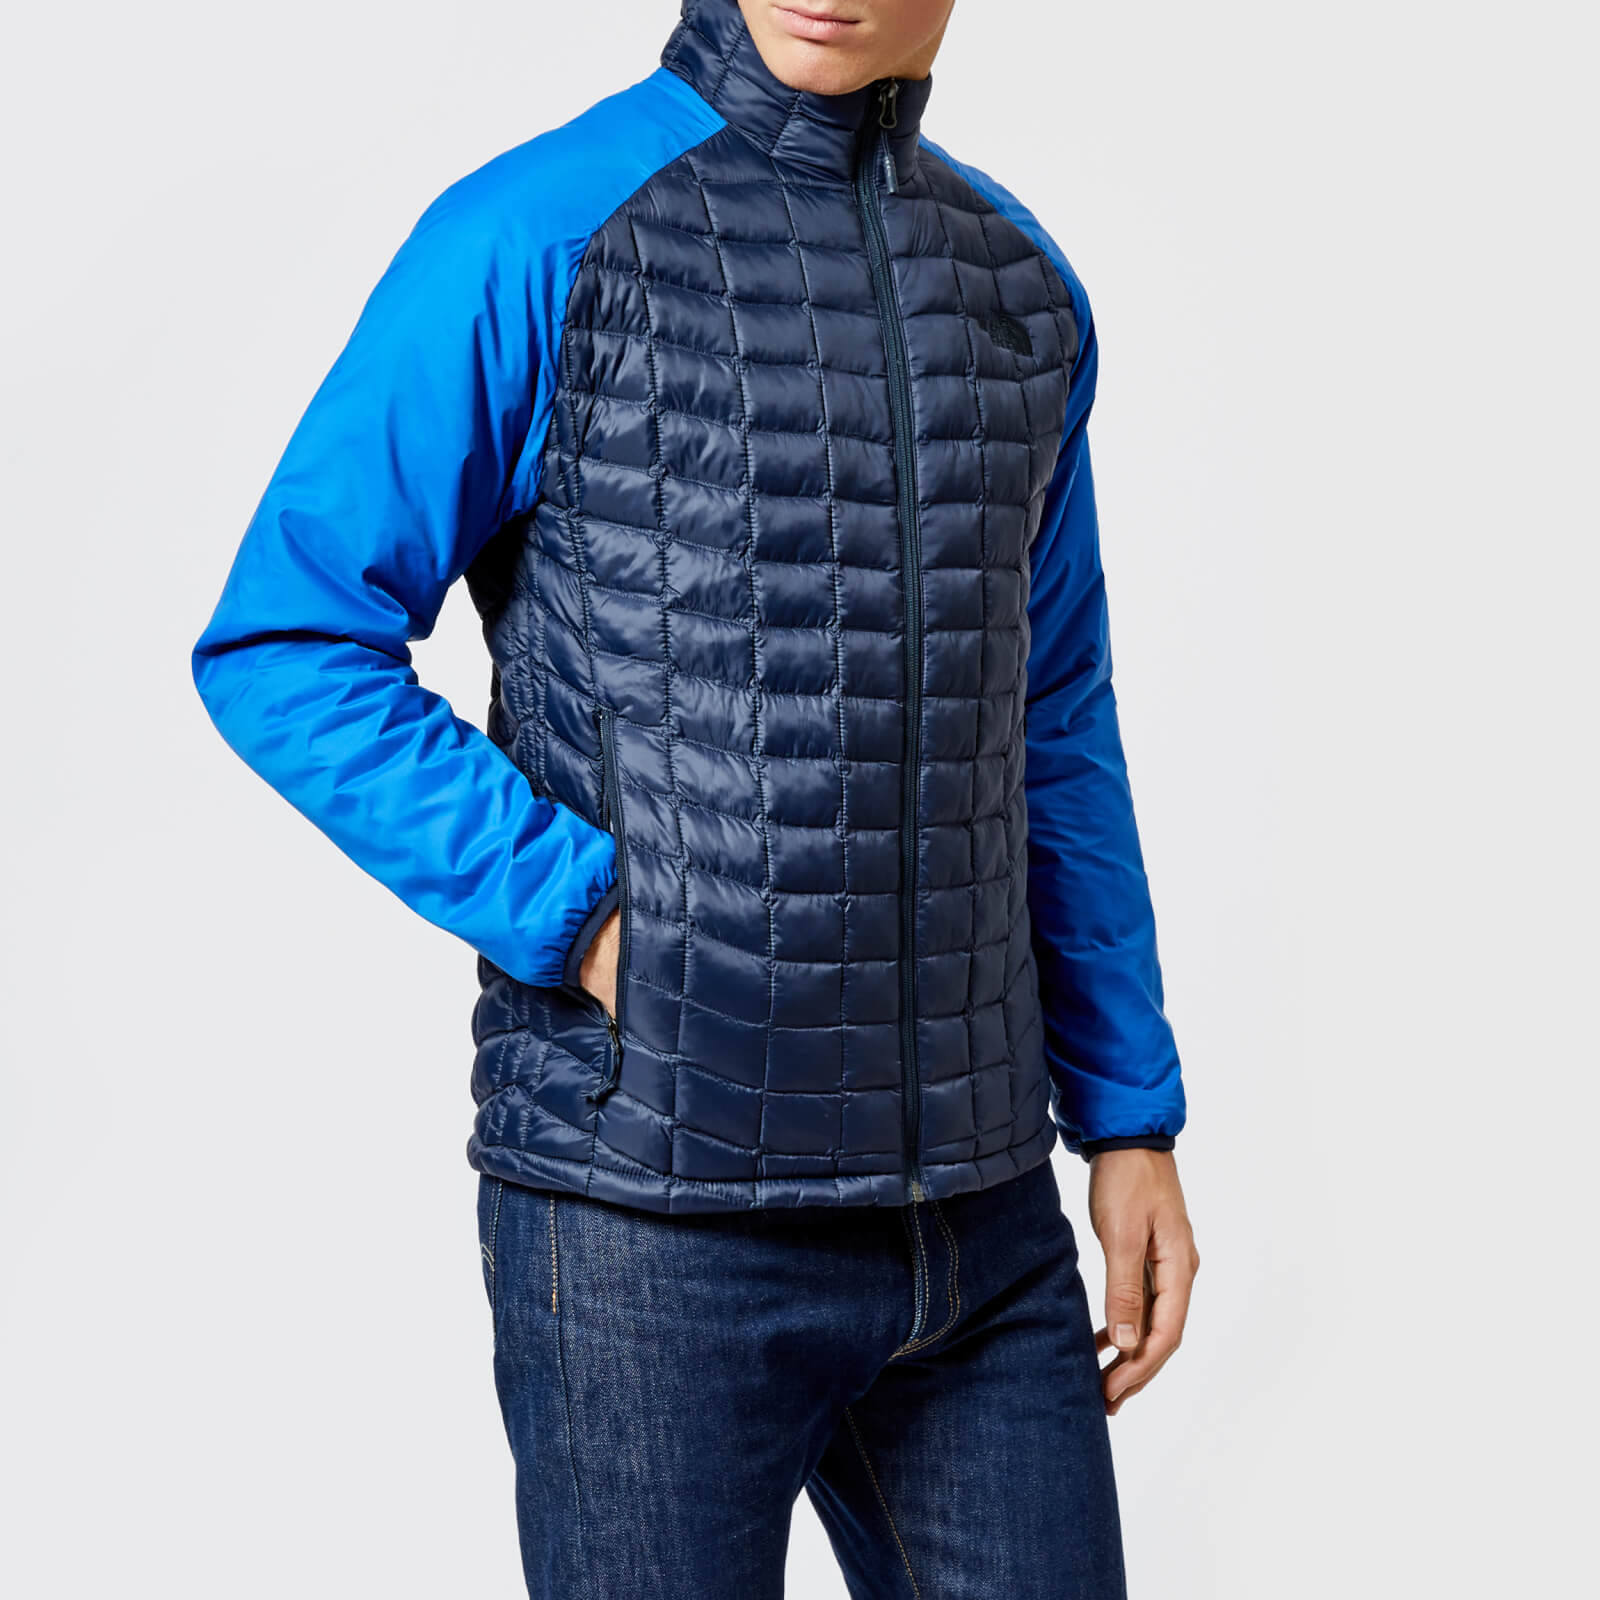 d51d024a66 ... The North Face Men's Thermoball Sport Jacket - Turkish Sea/Urban Navy